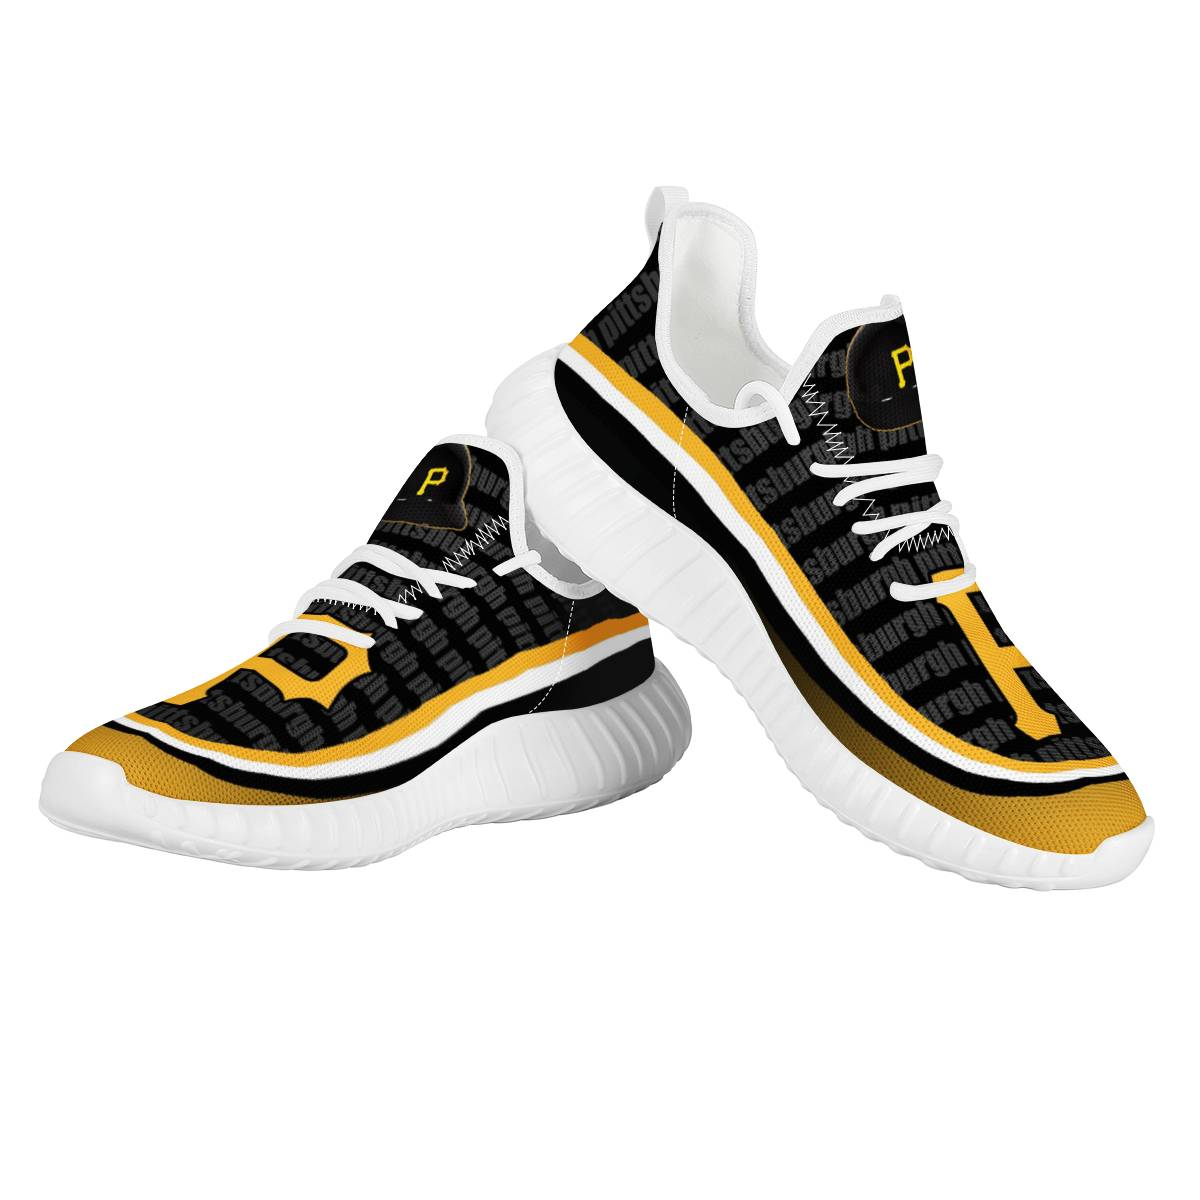 Pittsburgh Pirates shoes